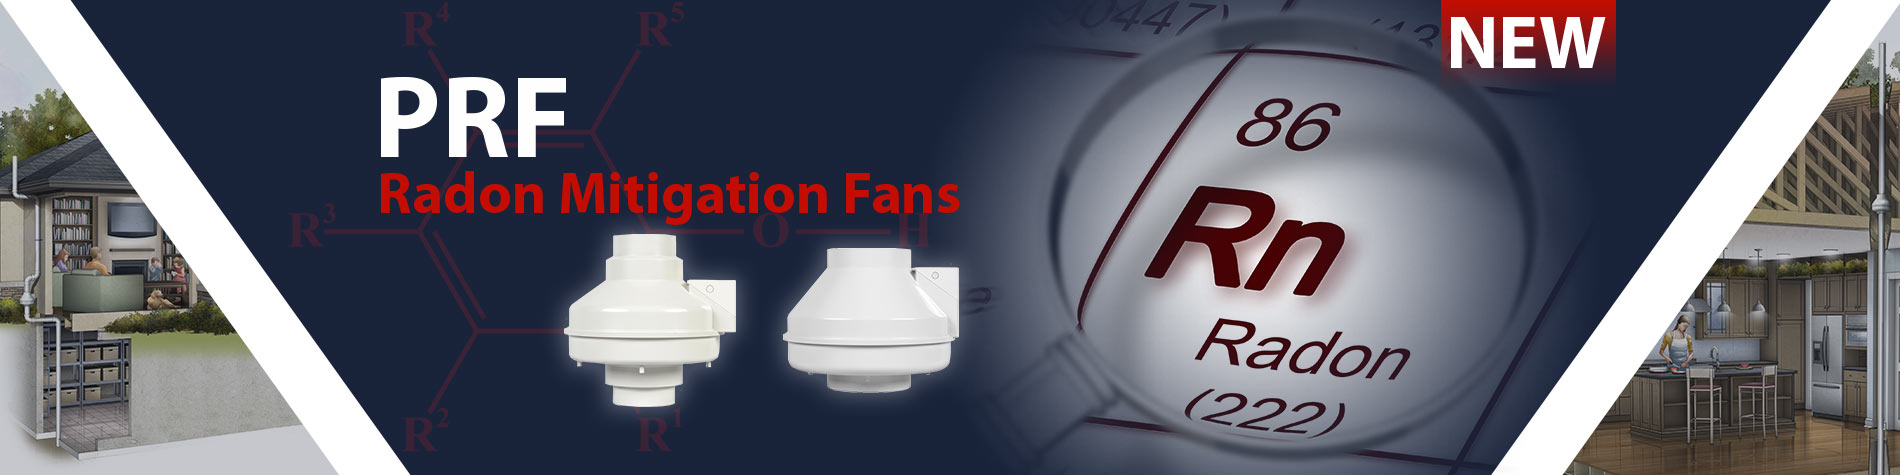 New Radiation Mitigation Fan by S&P